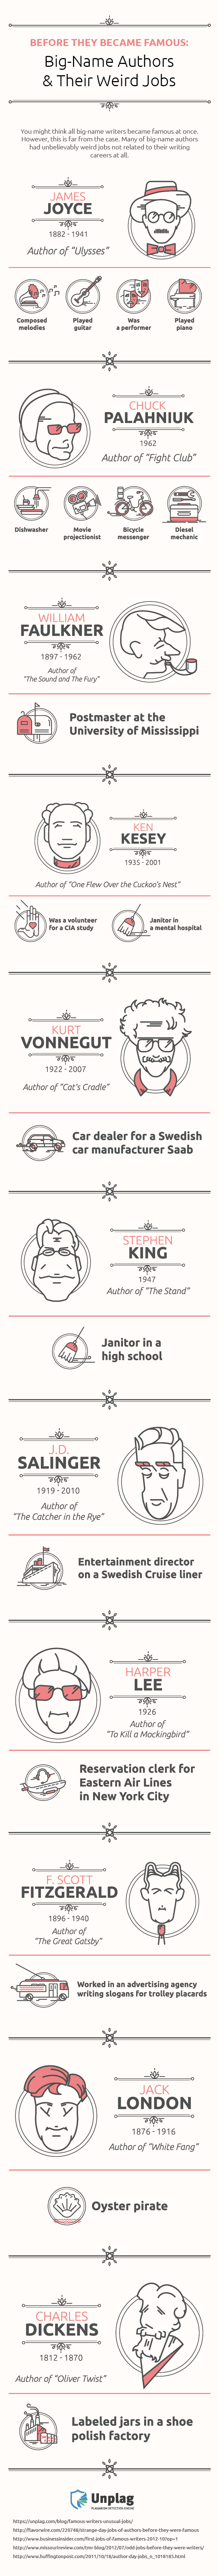 infographic unusual jobs of famous writers electric literature